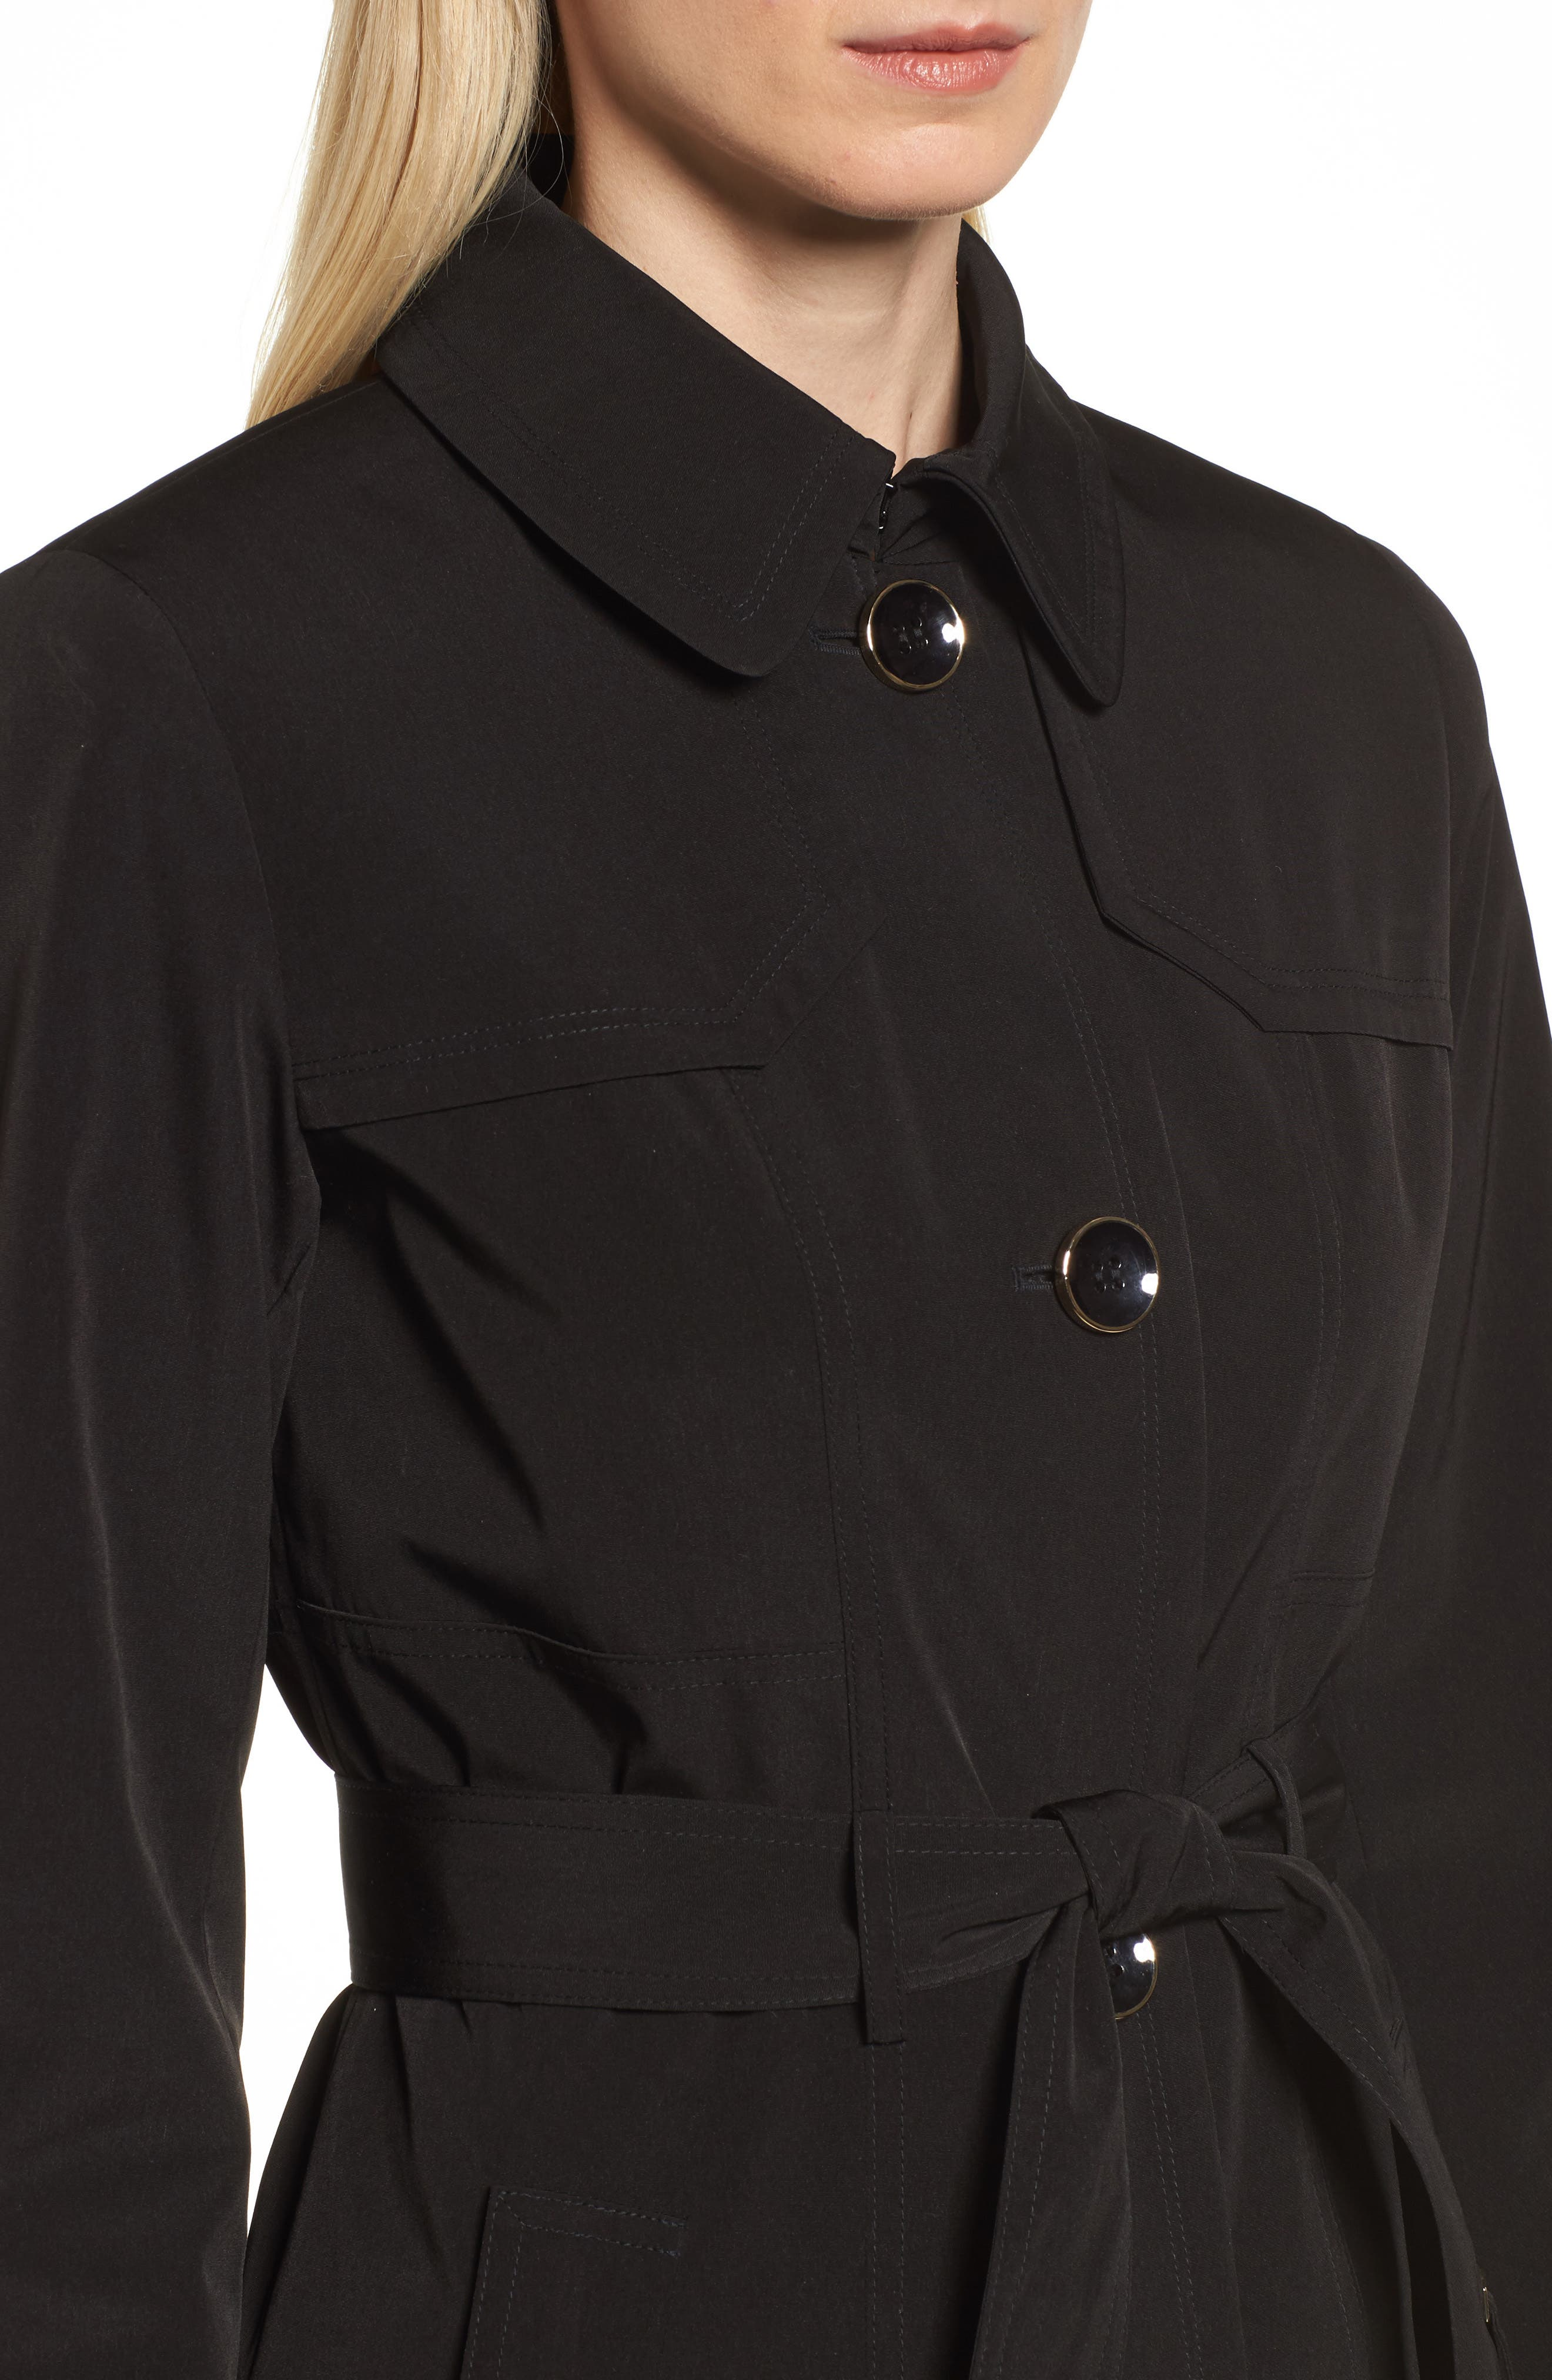 Belted Trench Raincoat,                             Alternate thumbnail 4, color,                             001